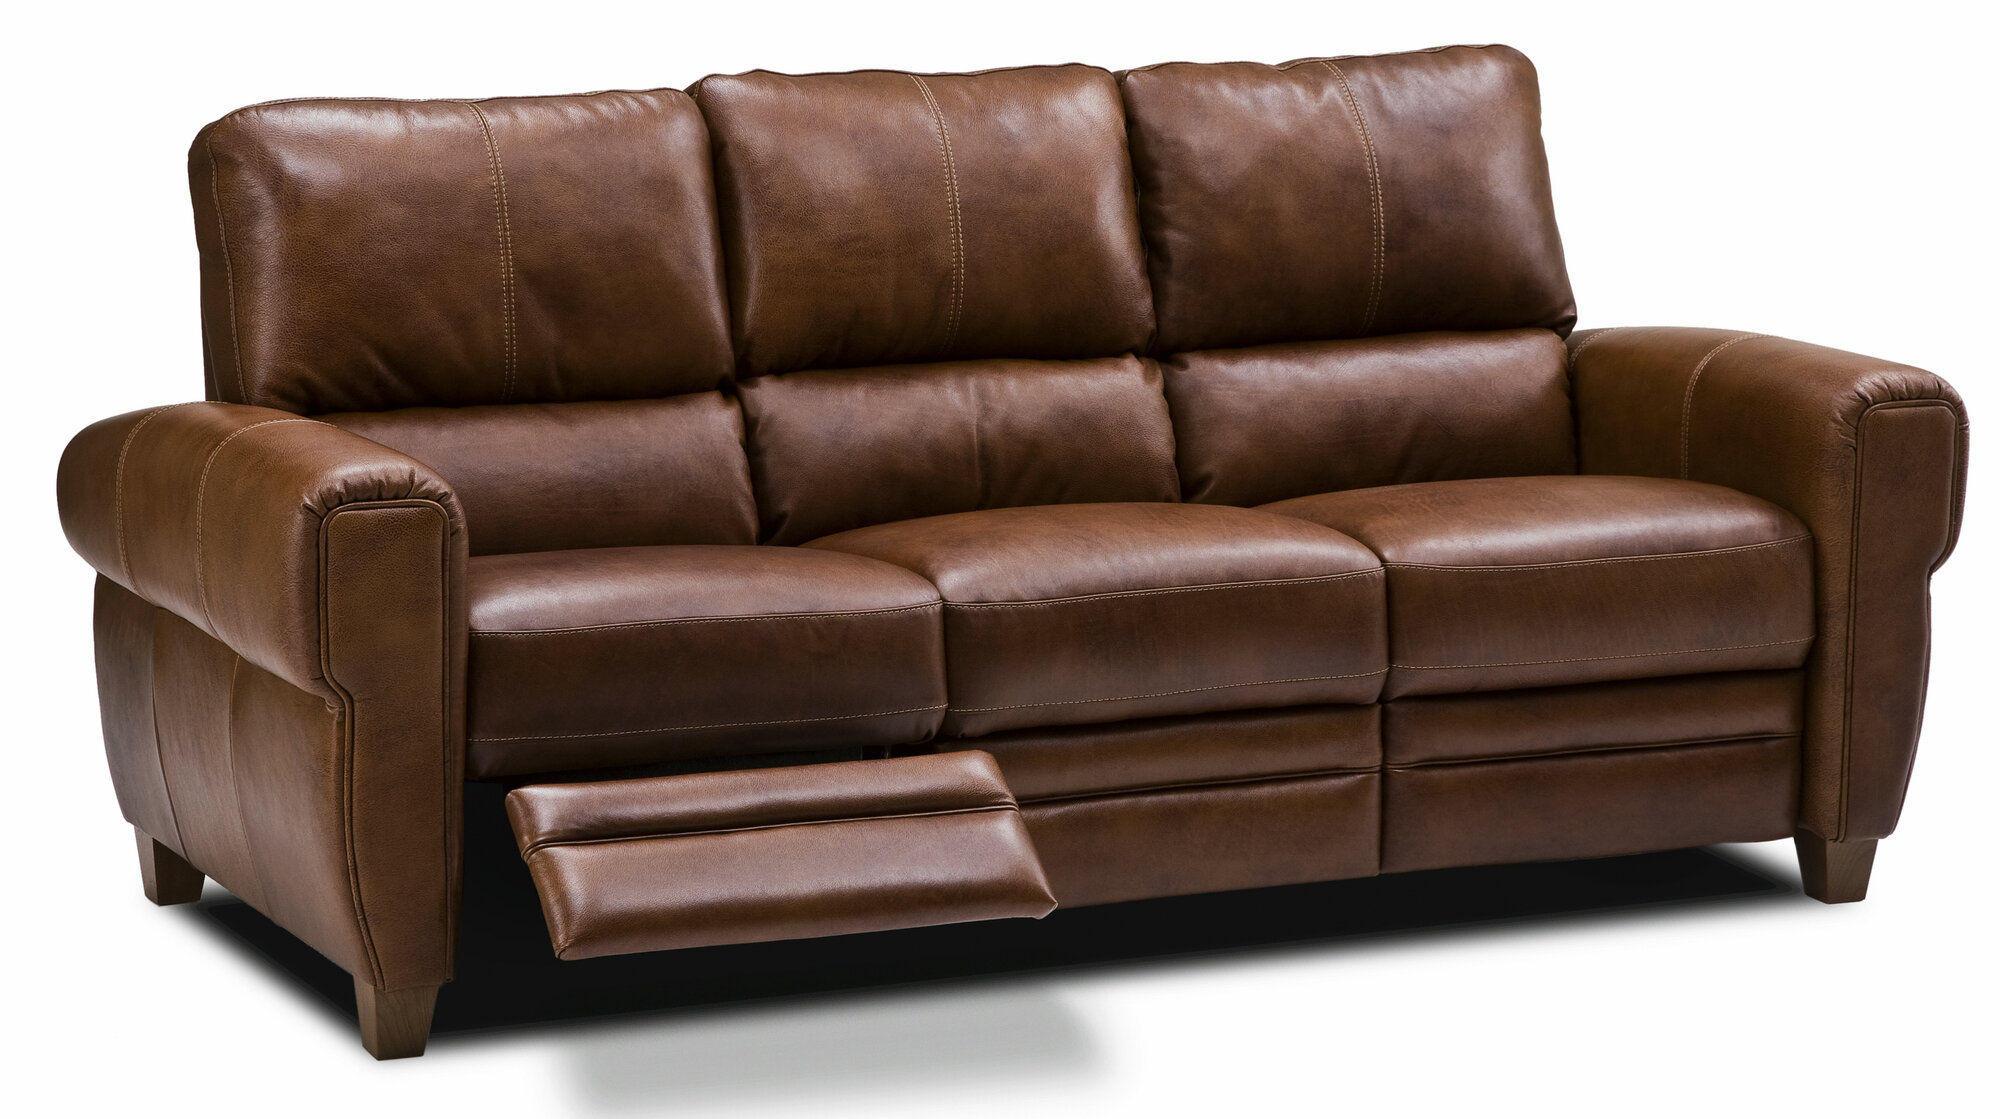 Recliner couches living room ideas for Leather reclining sofa